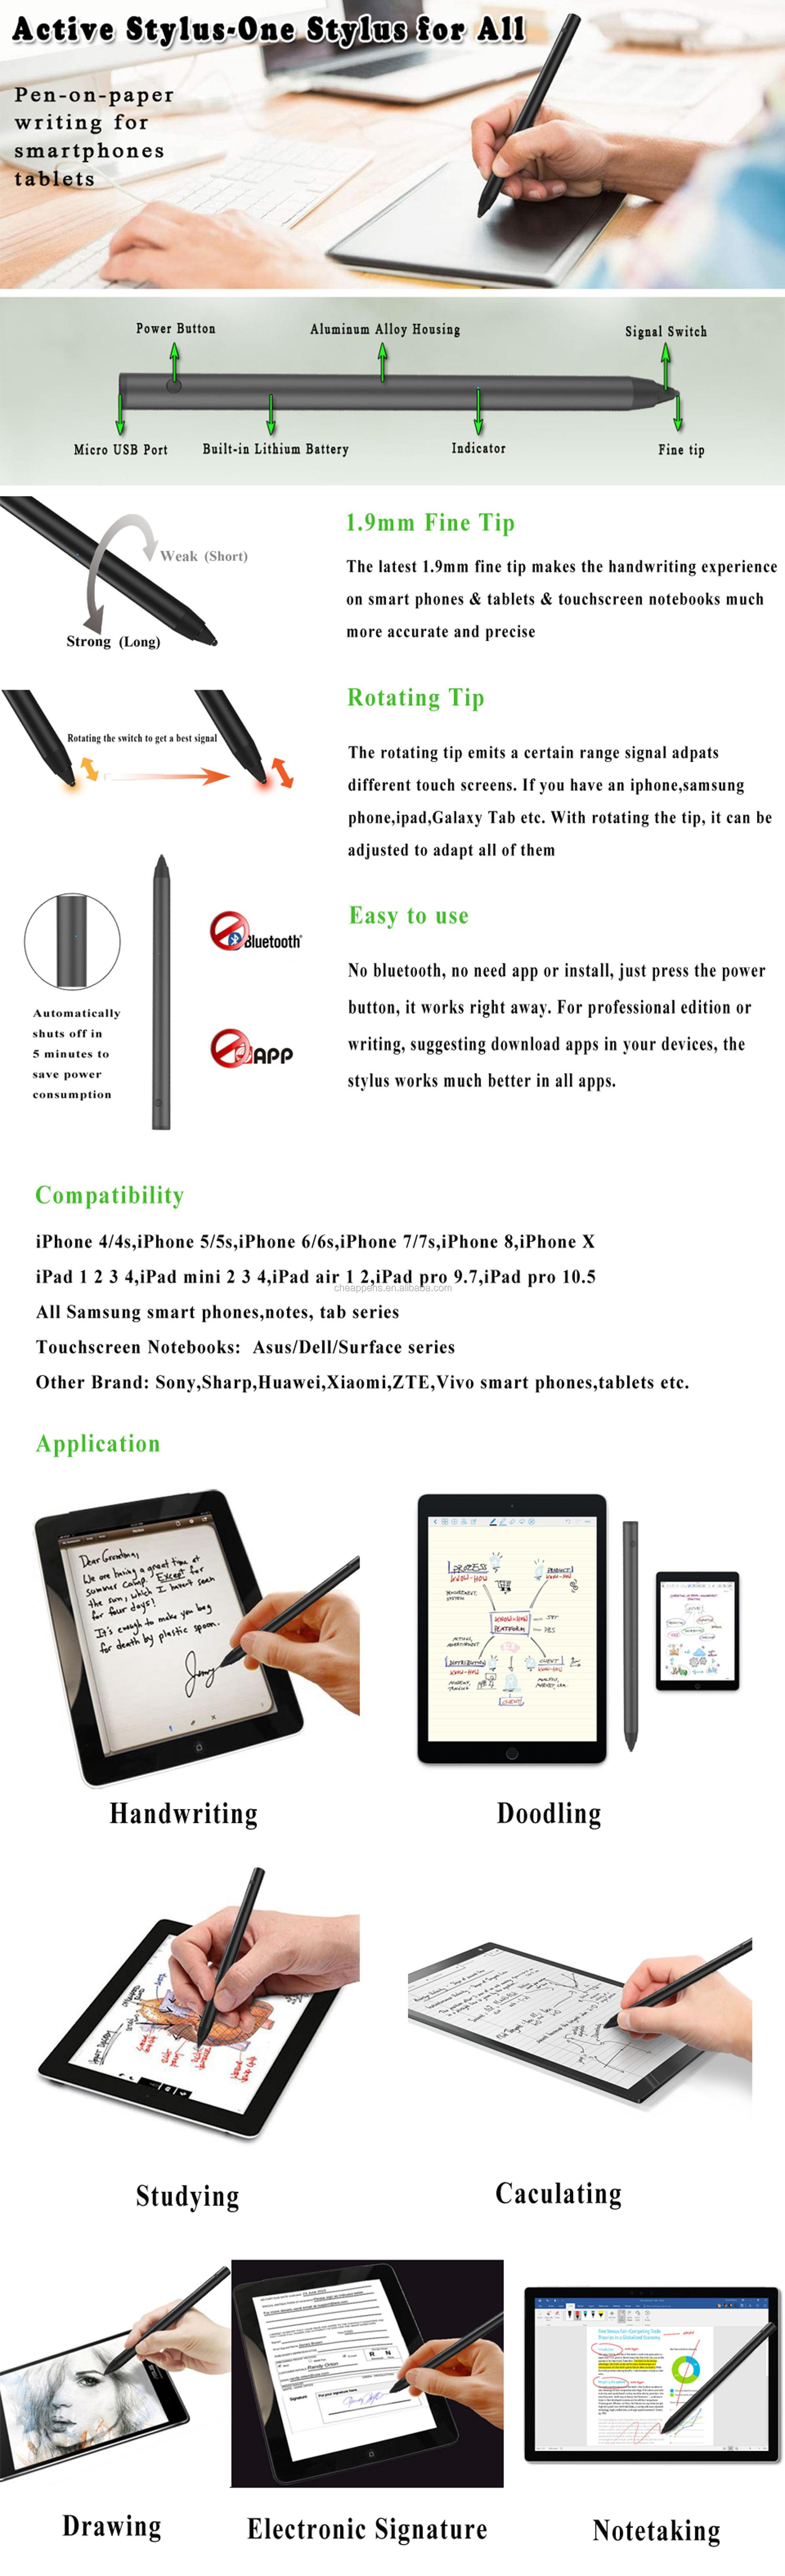 active stylus - one stylus for all pen on paper writing for smartphone tablets